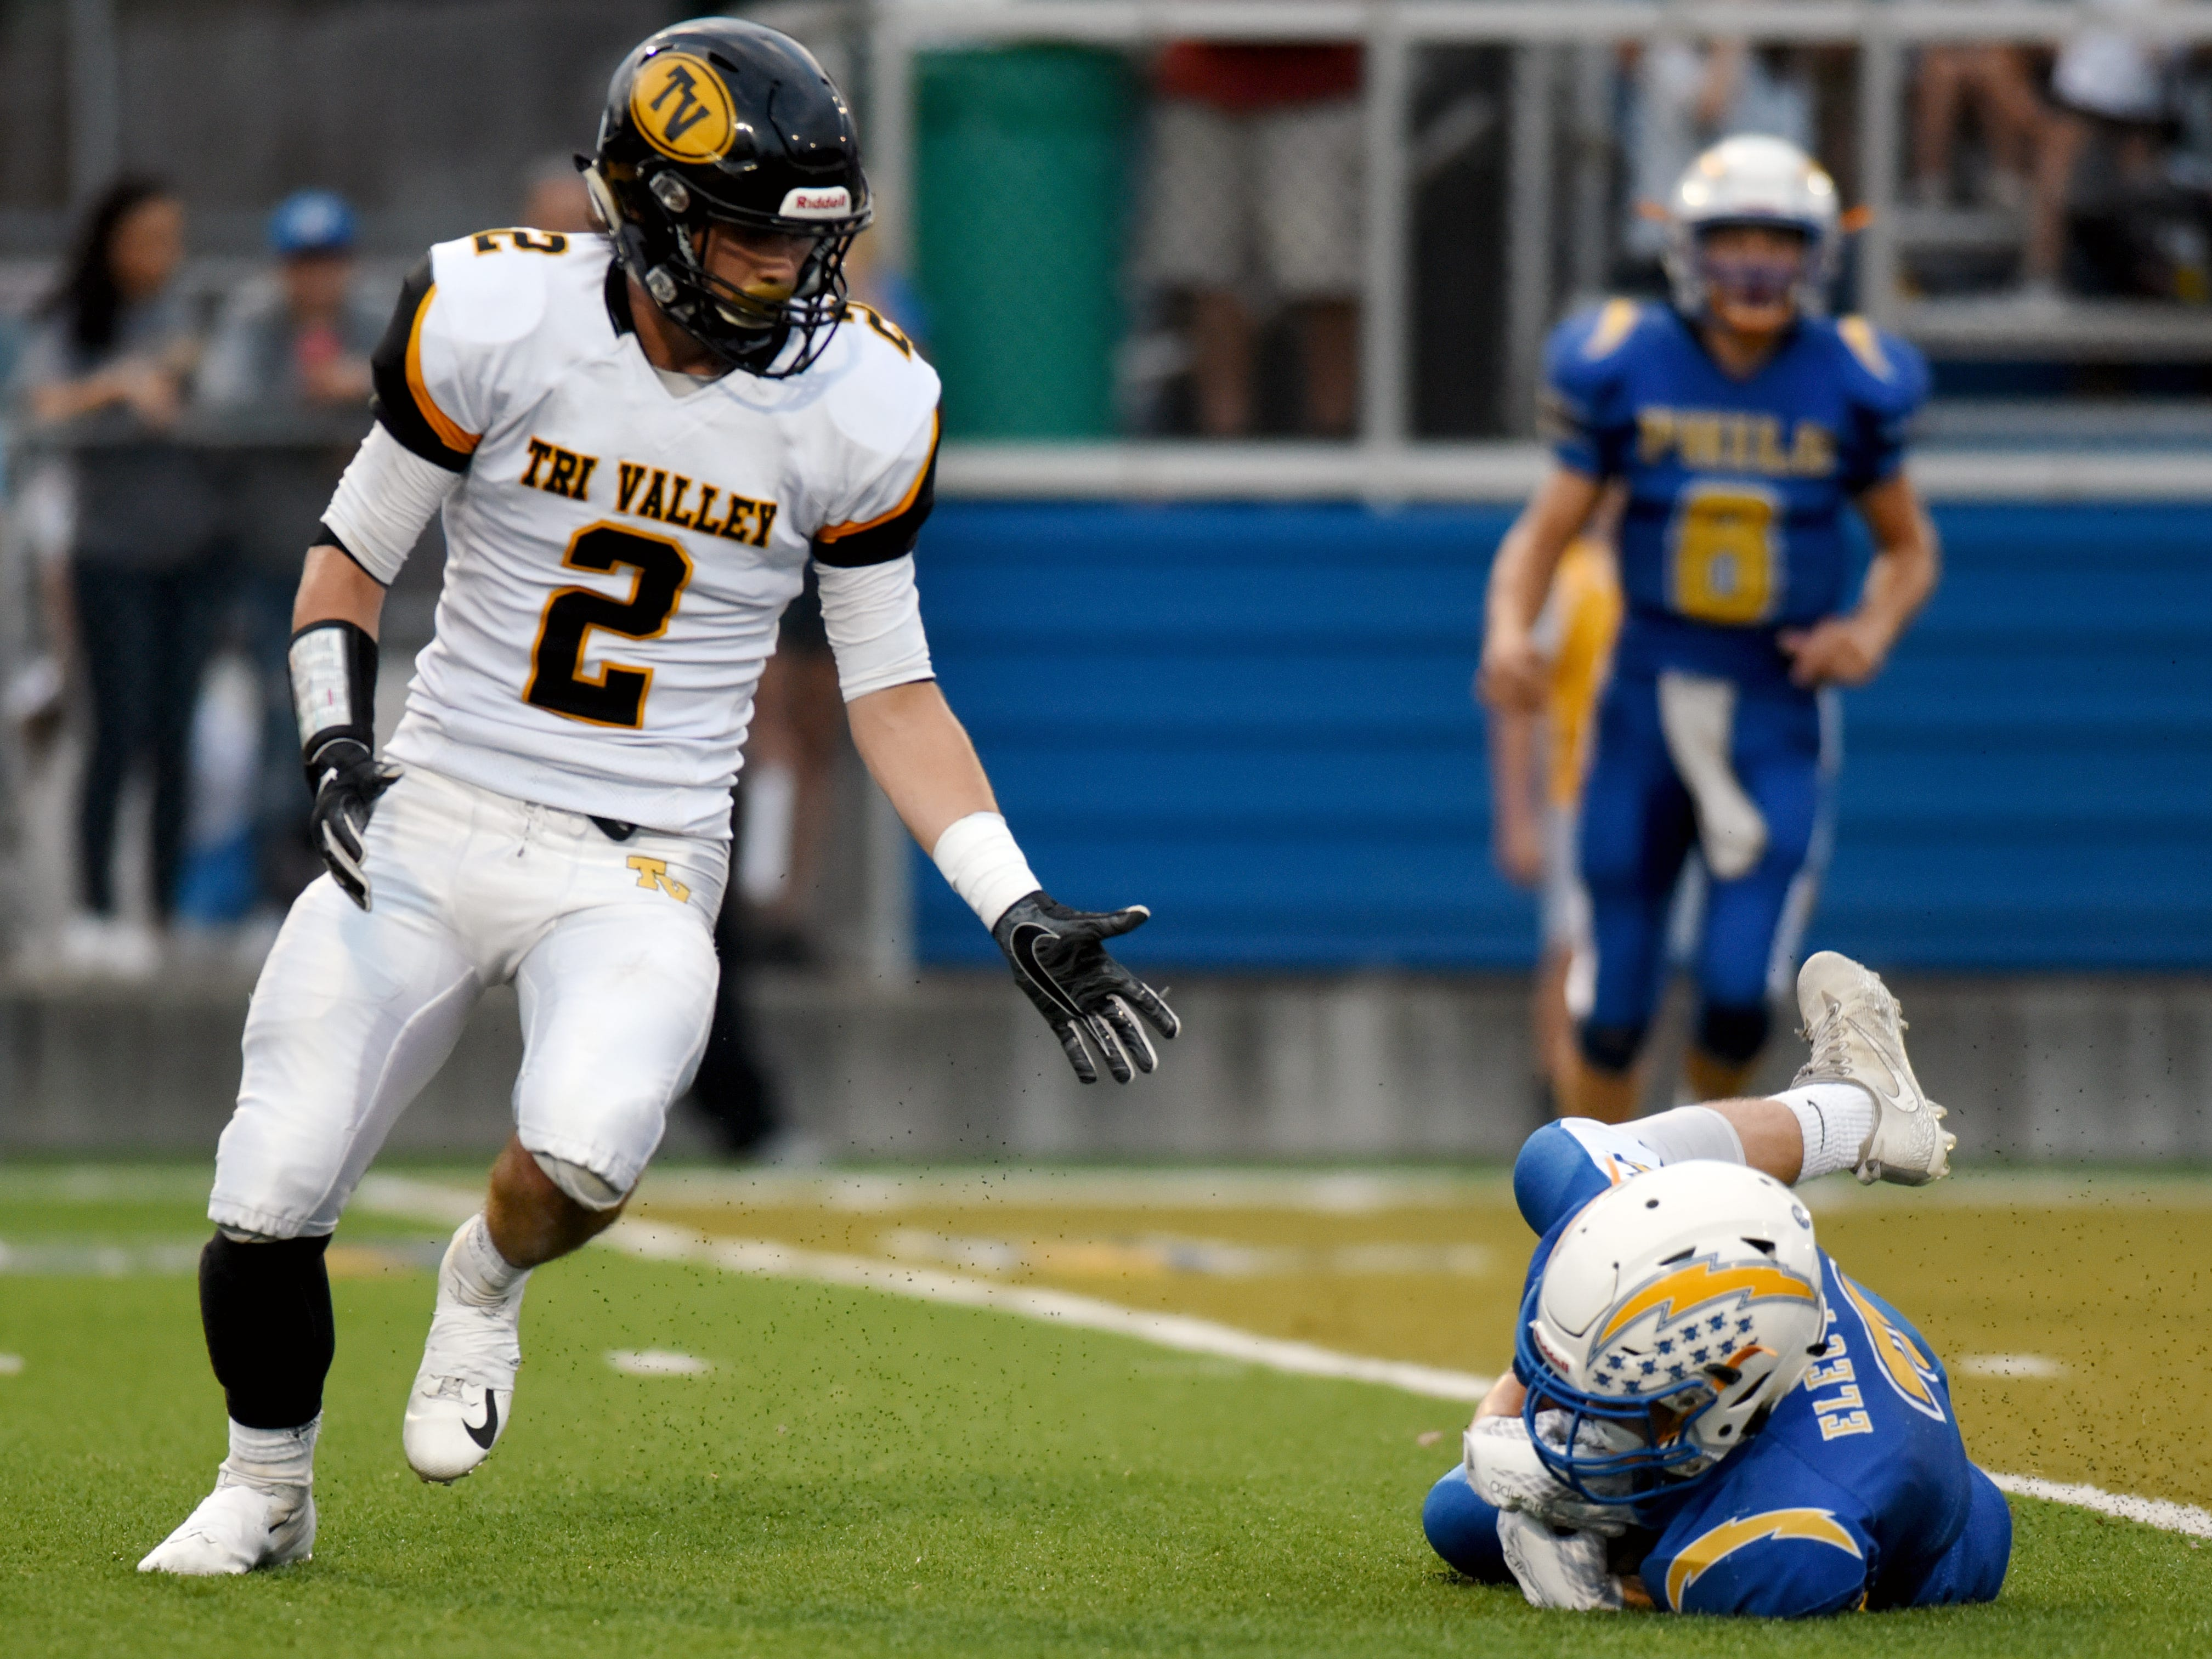 Philo's Ashlin Bailey, right, appears to make a diving interception in front of Tri-Valley's Blayze Taylor in the first half on Friday night in the Scotties' 28-14 comeback win on Friday night at Sam Hatfield Stadium.